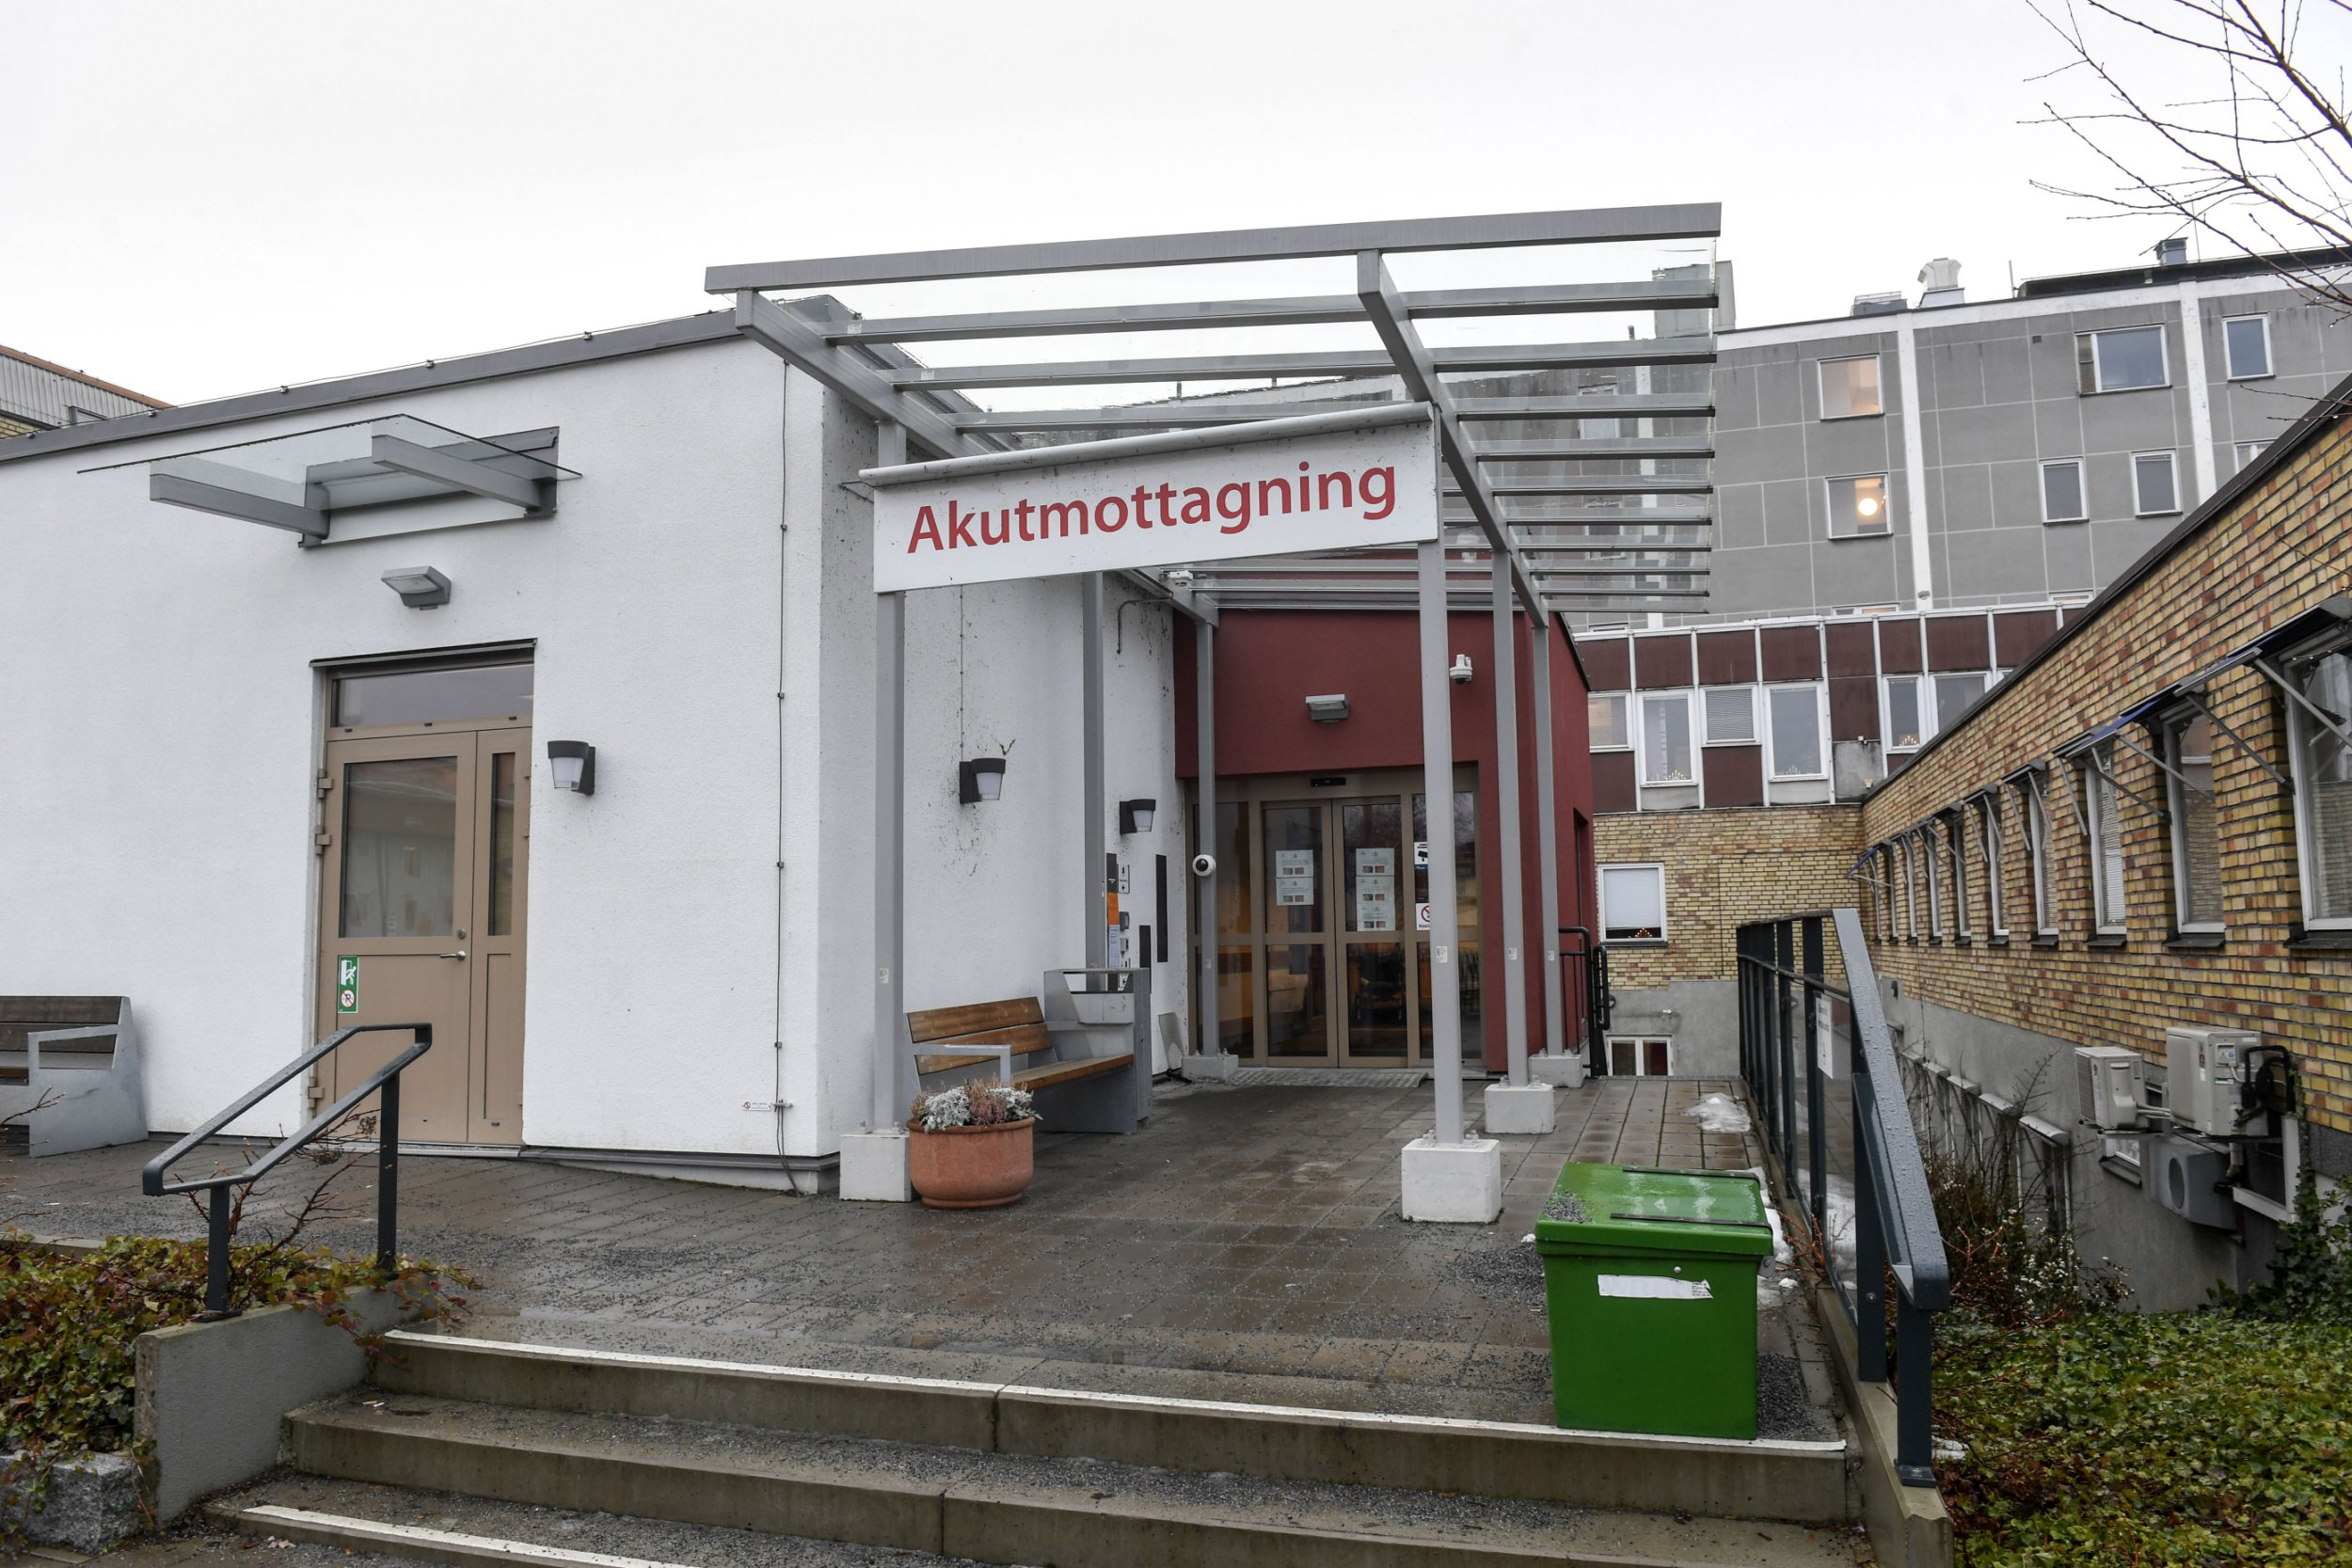 The emergency department of the hospital in Enk??ping, Sweden, is pictured on January 4, 2019, as it has received a case of suspected Ebola, according to health care officials. - The patient was first admitted to hospital in Enkoping after being treated now in Uppsala University Hospital. The emergency room in Enkoping has now been closed, and staff who came in contact with the patient are being cared for, a statement said. Ebola is a highly infectious and potentially fatal disease. (Photo by Fredrik SANDBERG / TT News Agency / AFP) / Sweden OUT (Photo credit should read FREDRIK SANDBERG/AFP/Getty Images)